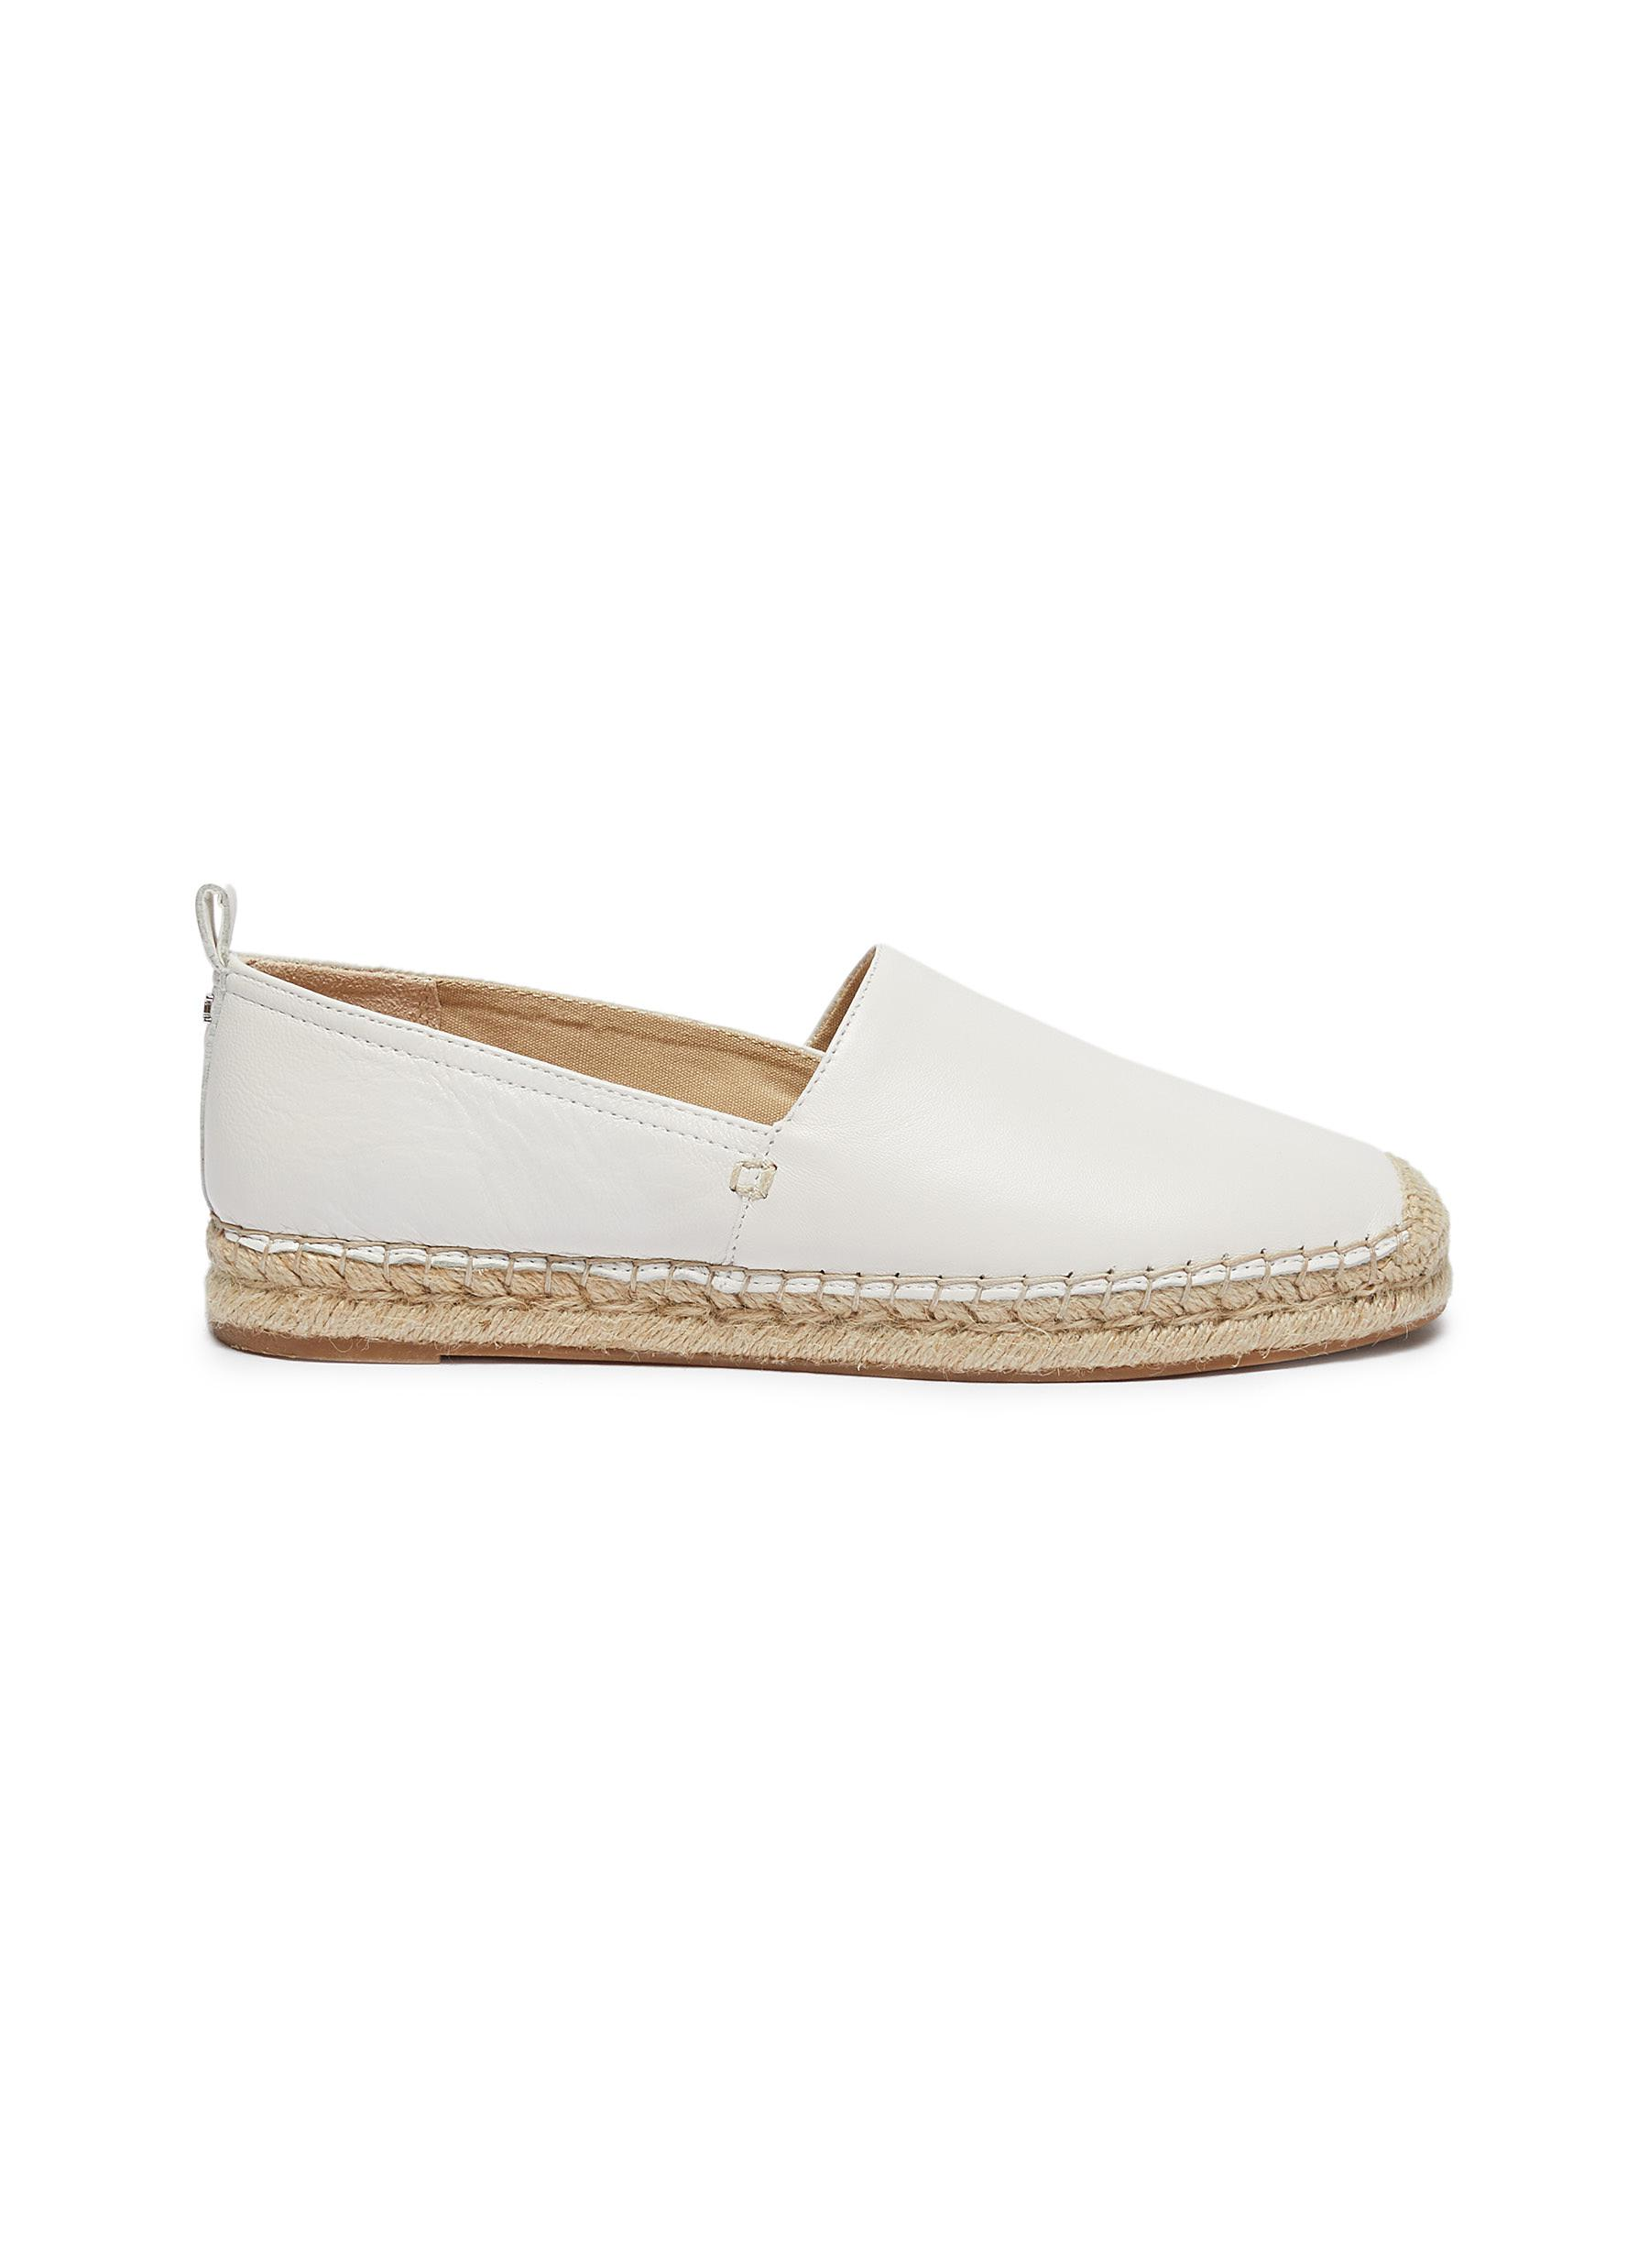 a554129fe Main View - Click To Enlarge - Sam Edelman -  Khloe  leather espadrilles